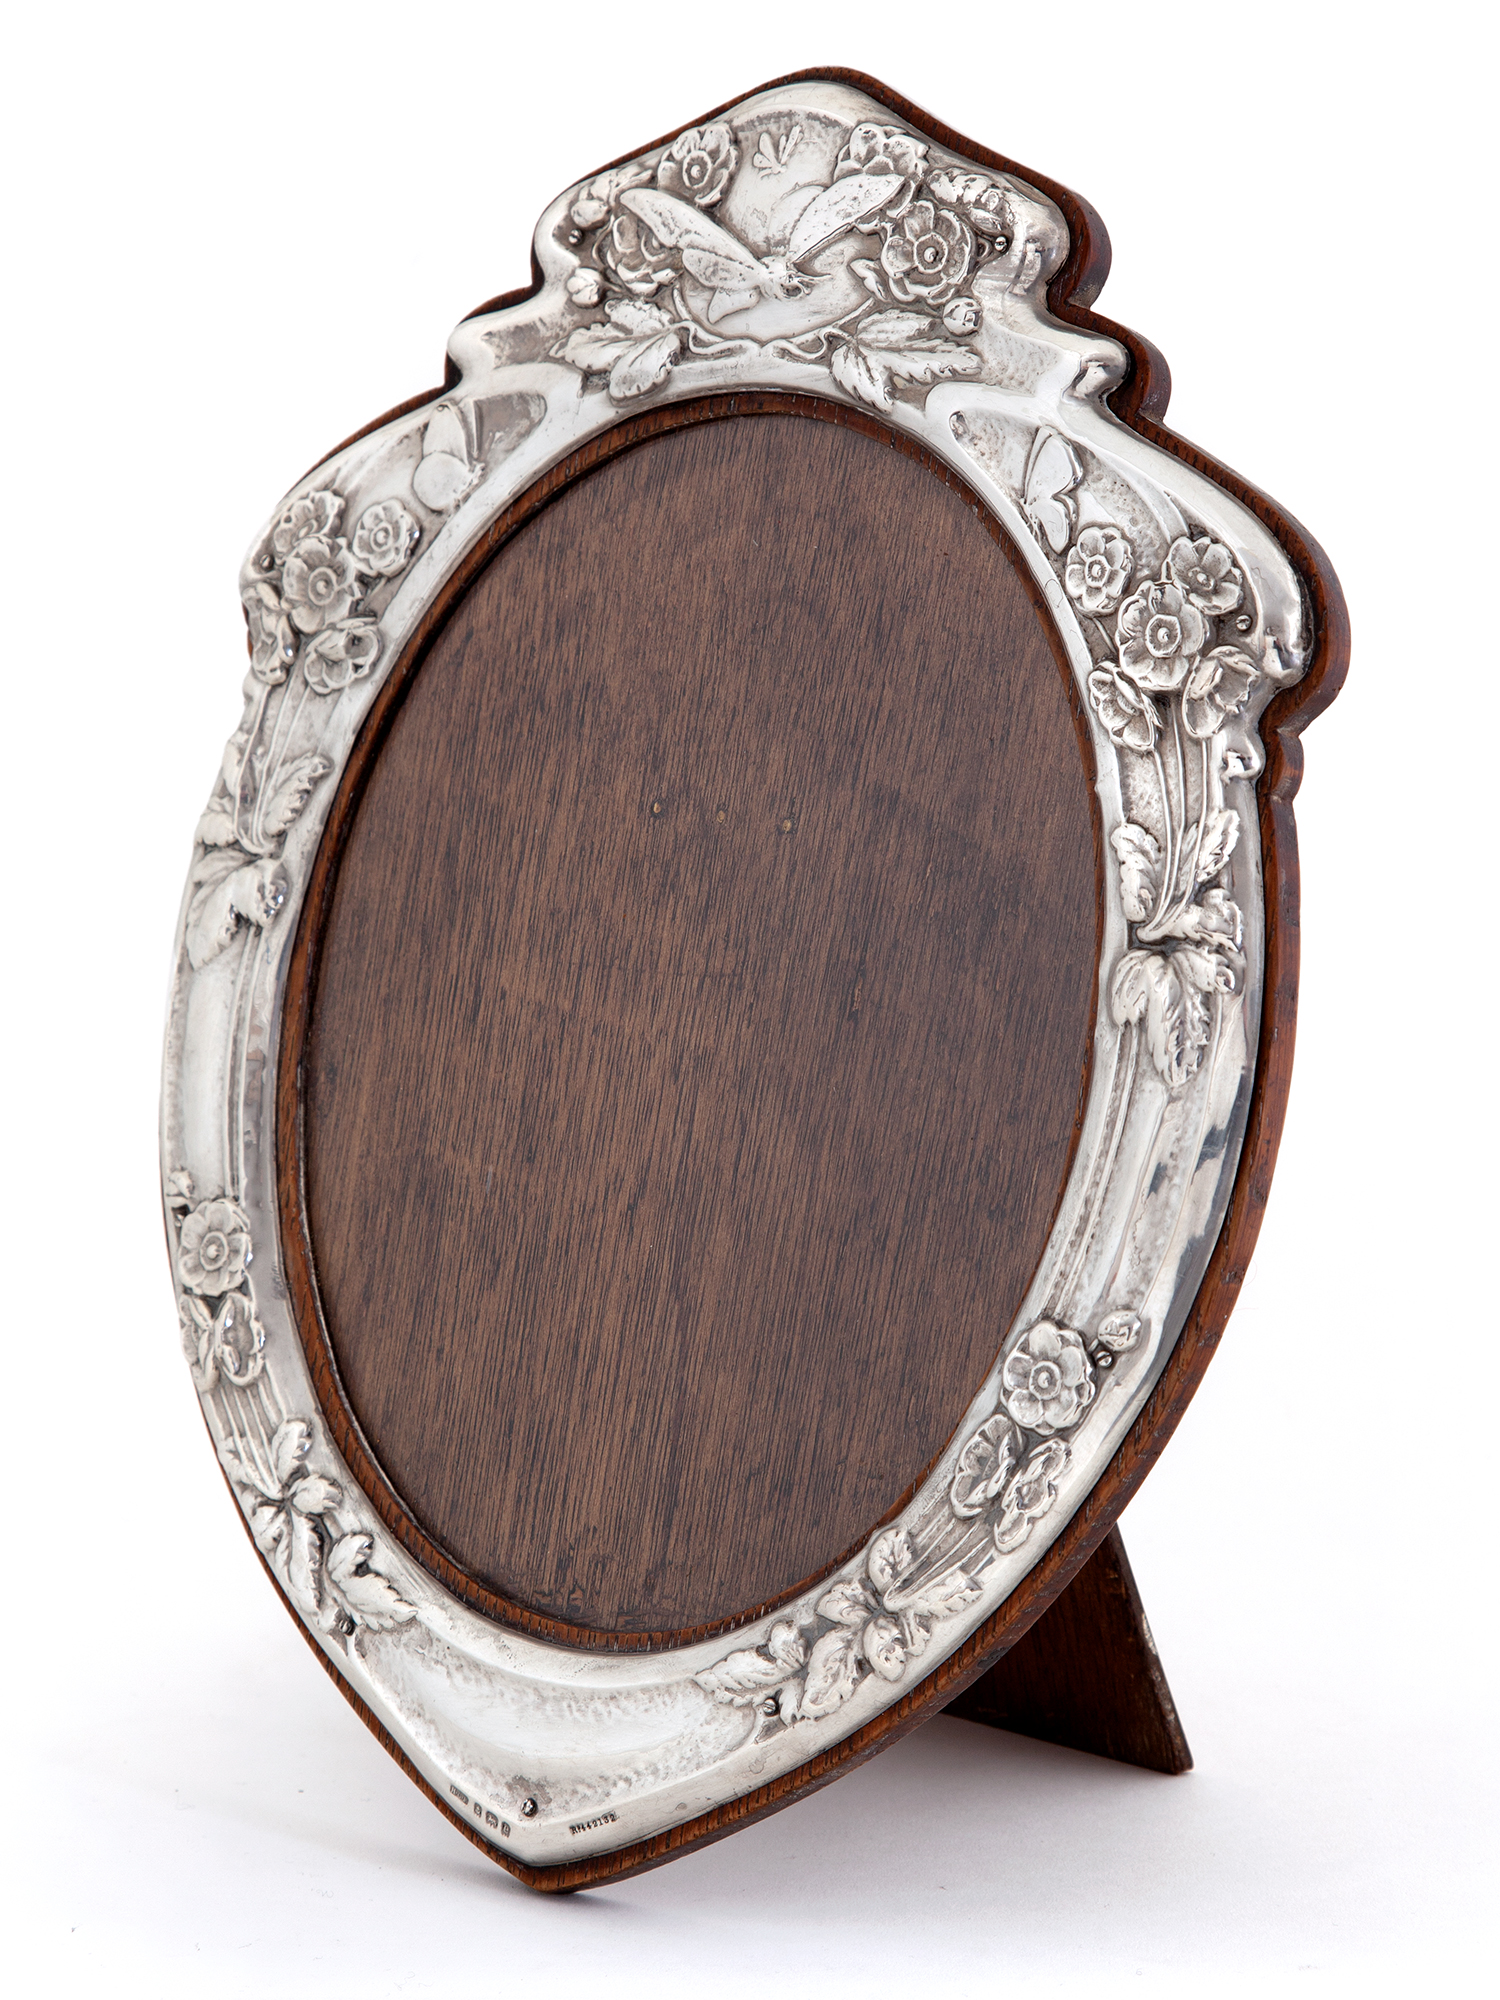 Piers Rankin Silver Antiques image (7 of 11)